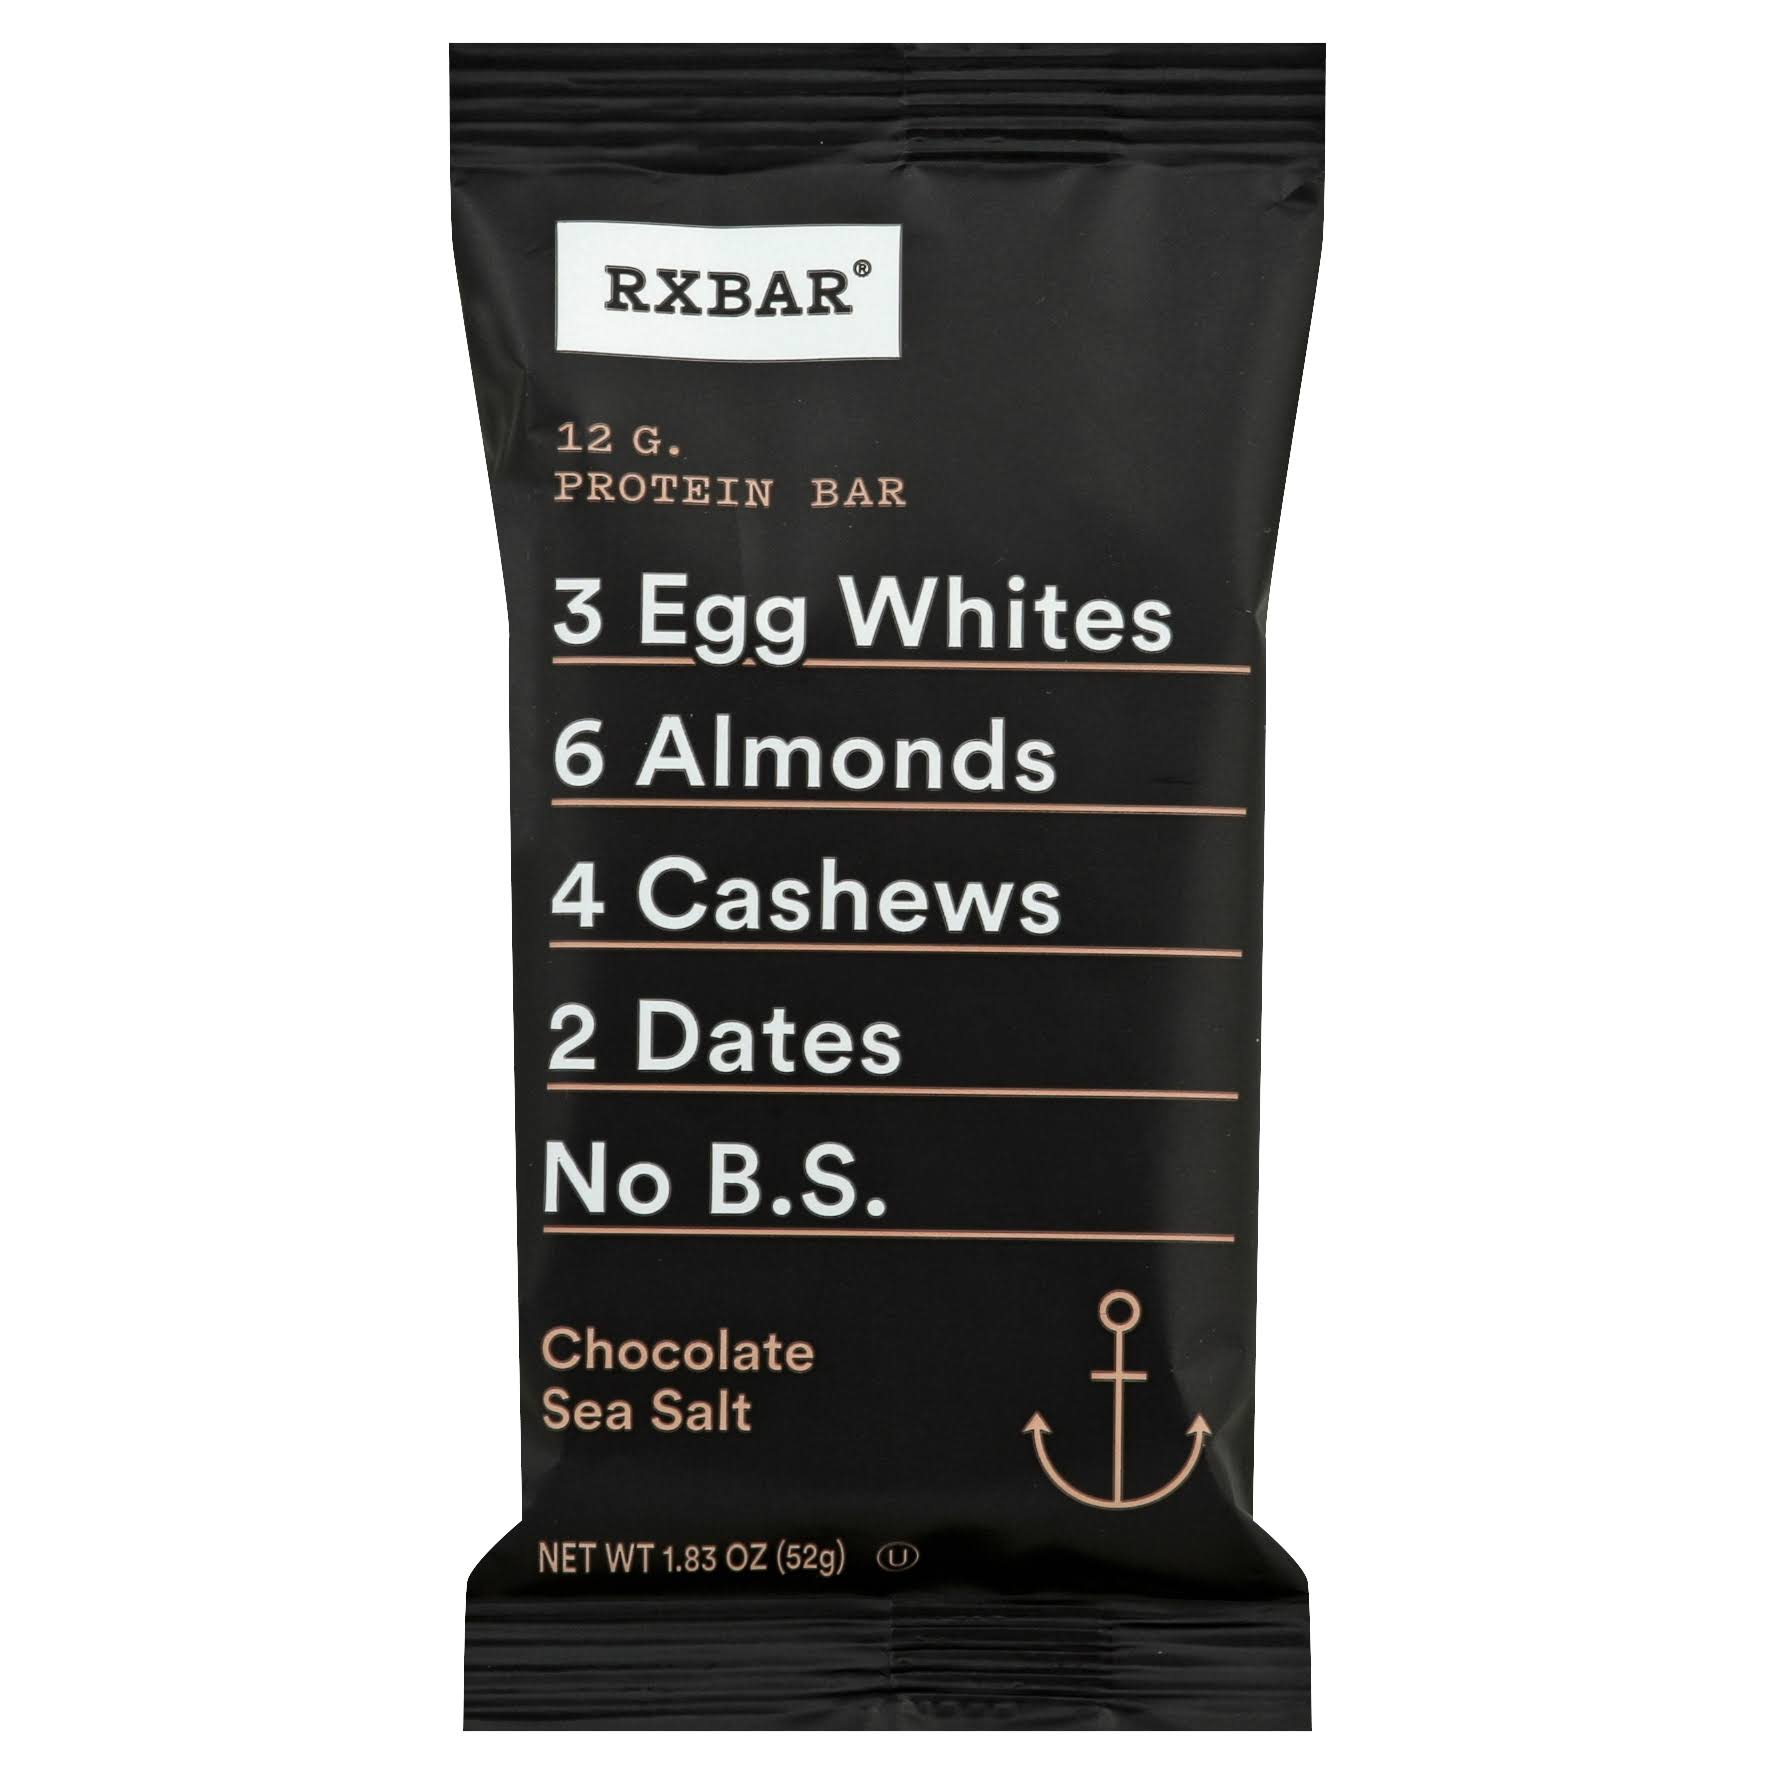 Rx Bar Protein Bar - Chocolate Sea Salt